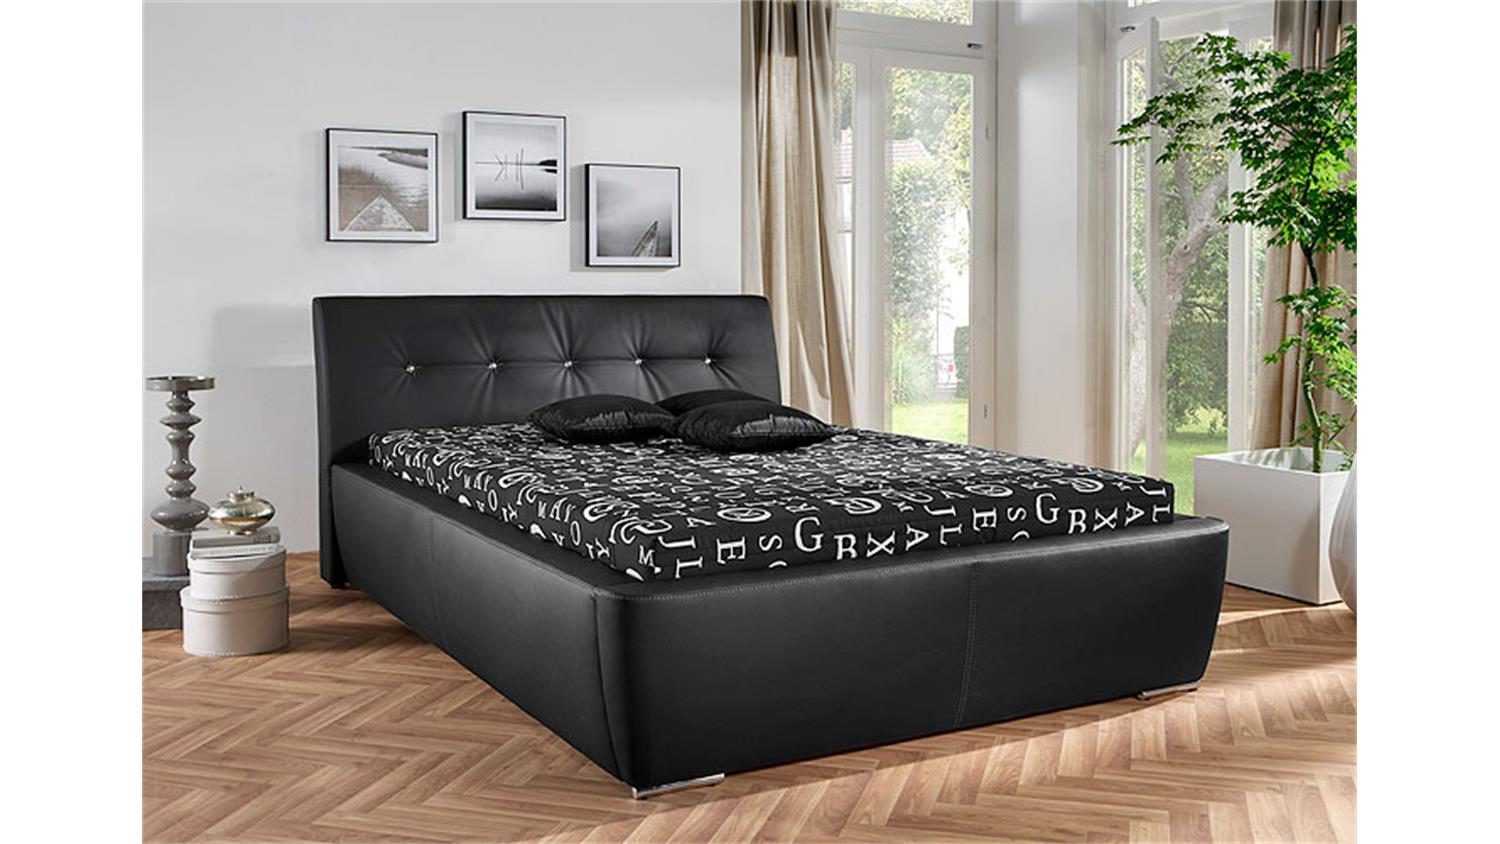 polsterbett cyrano schwarz mit glitzersteinen 140x200 cm. Black Bedroom Furniture Sets. Home Design Ideas